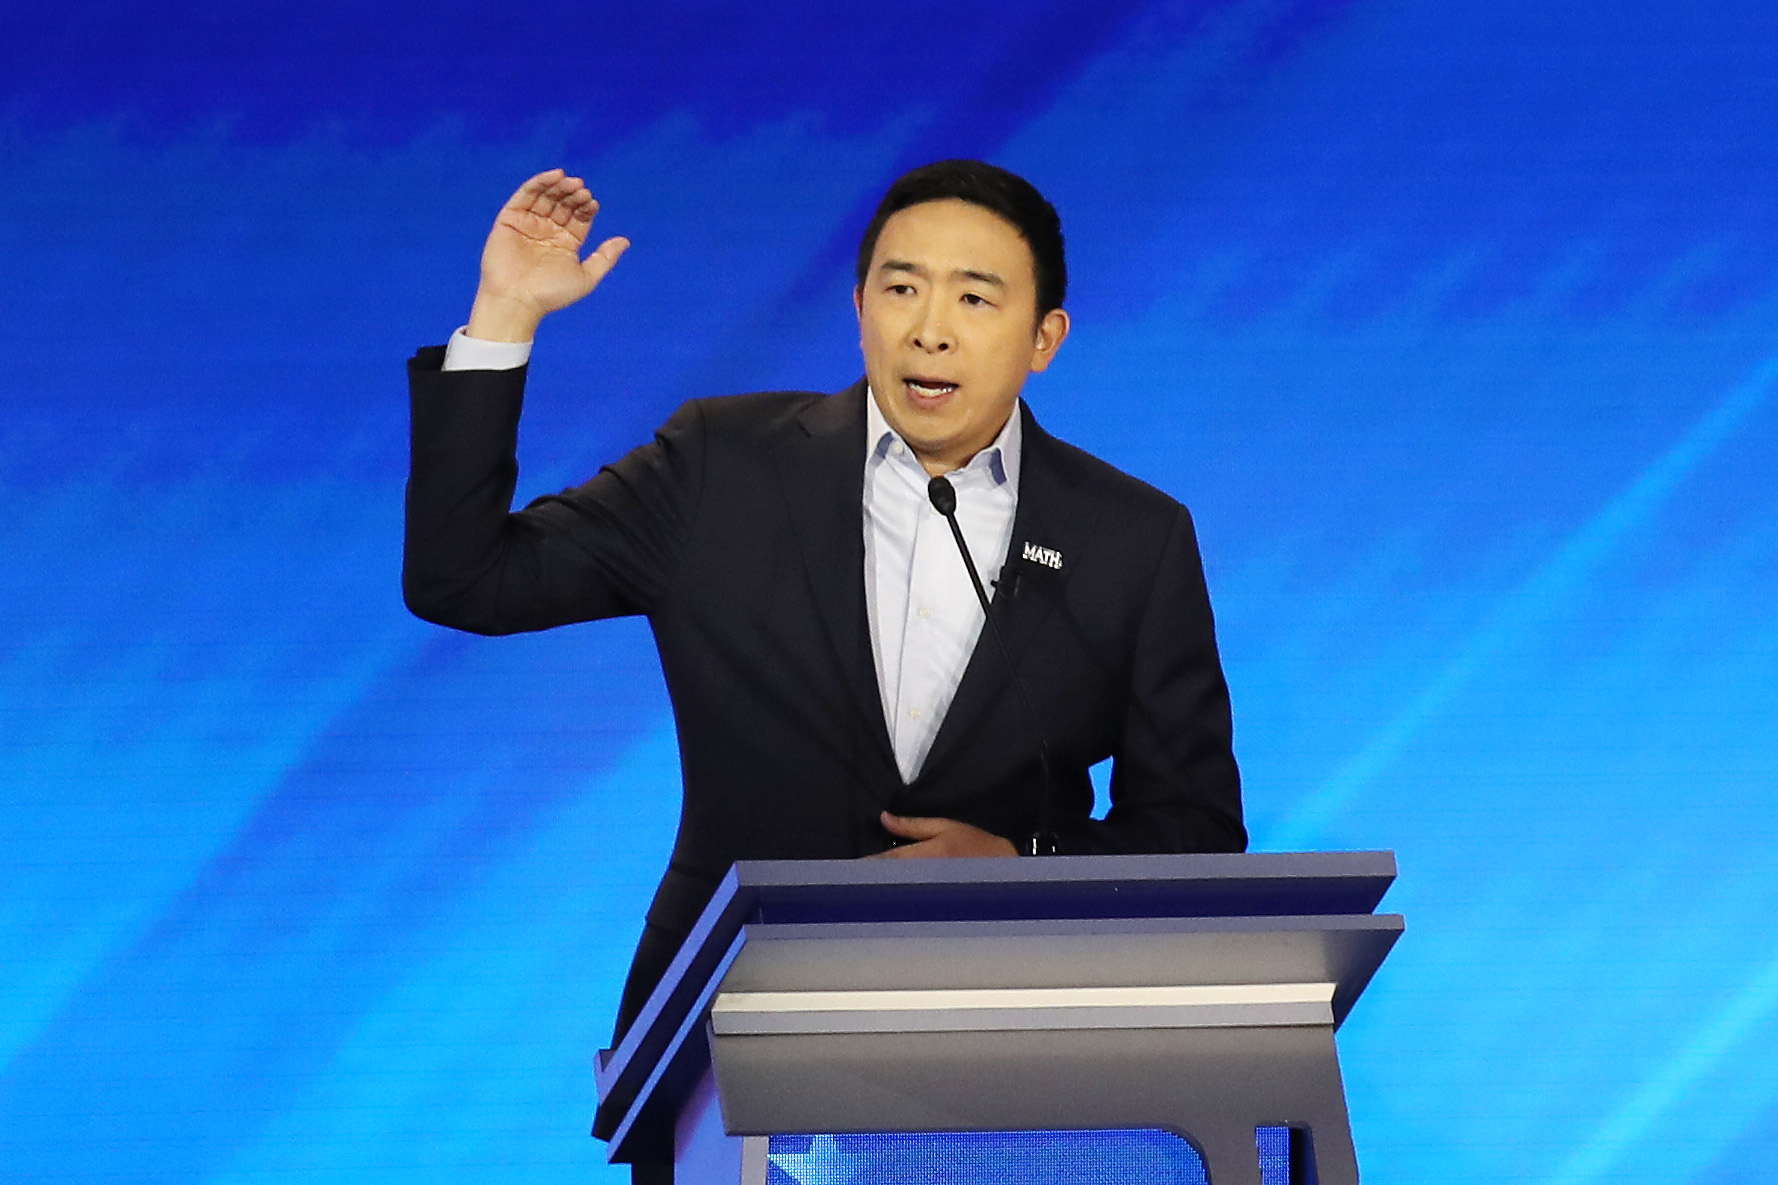 Silicon Valley entrepreneur Andrew Yang sought the Democratic nomination for U.S. president in 2020, campaigning in part on a promise of a $1,000-a-month universal basic income. (Joe Raedle/Getty Images)